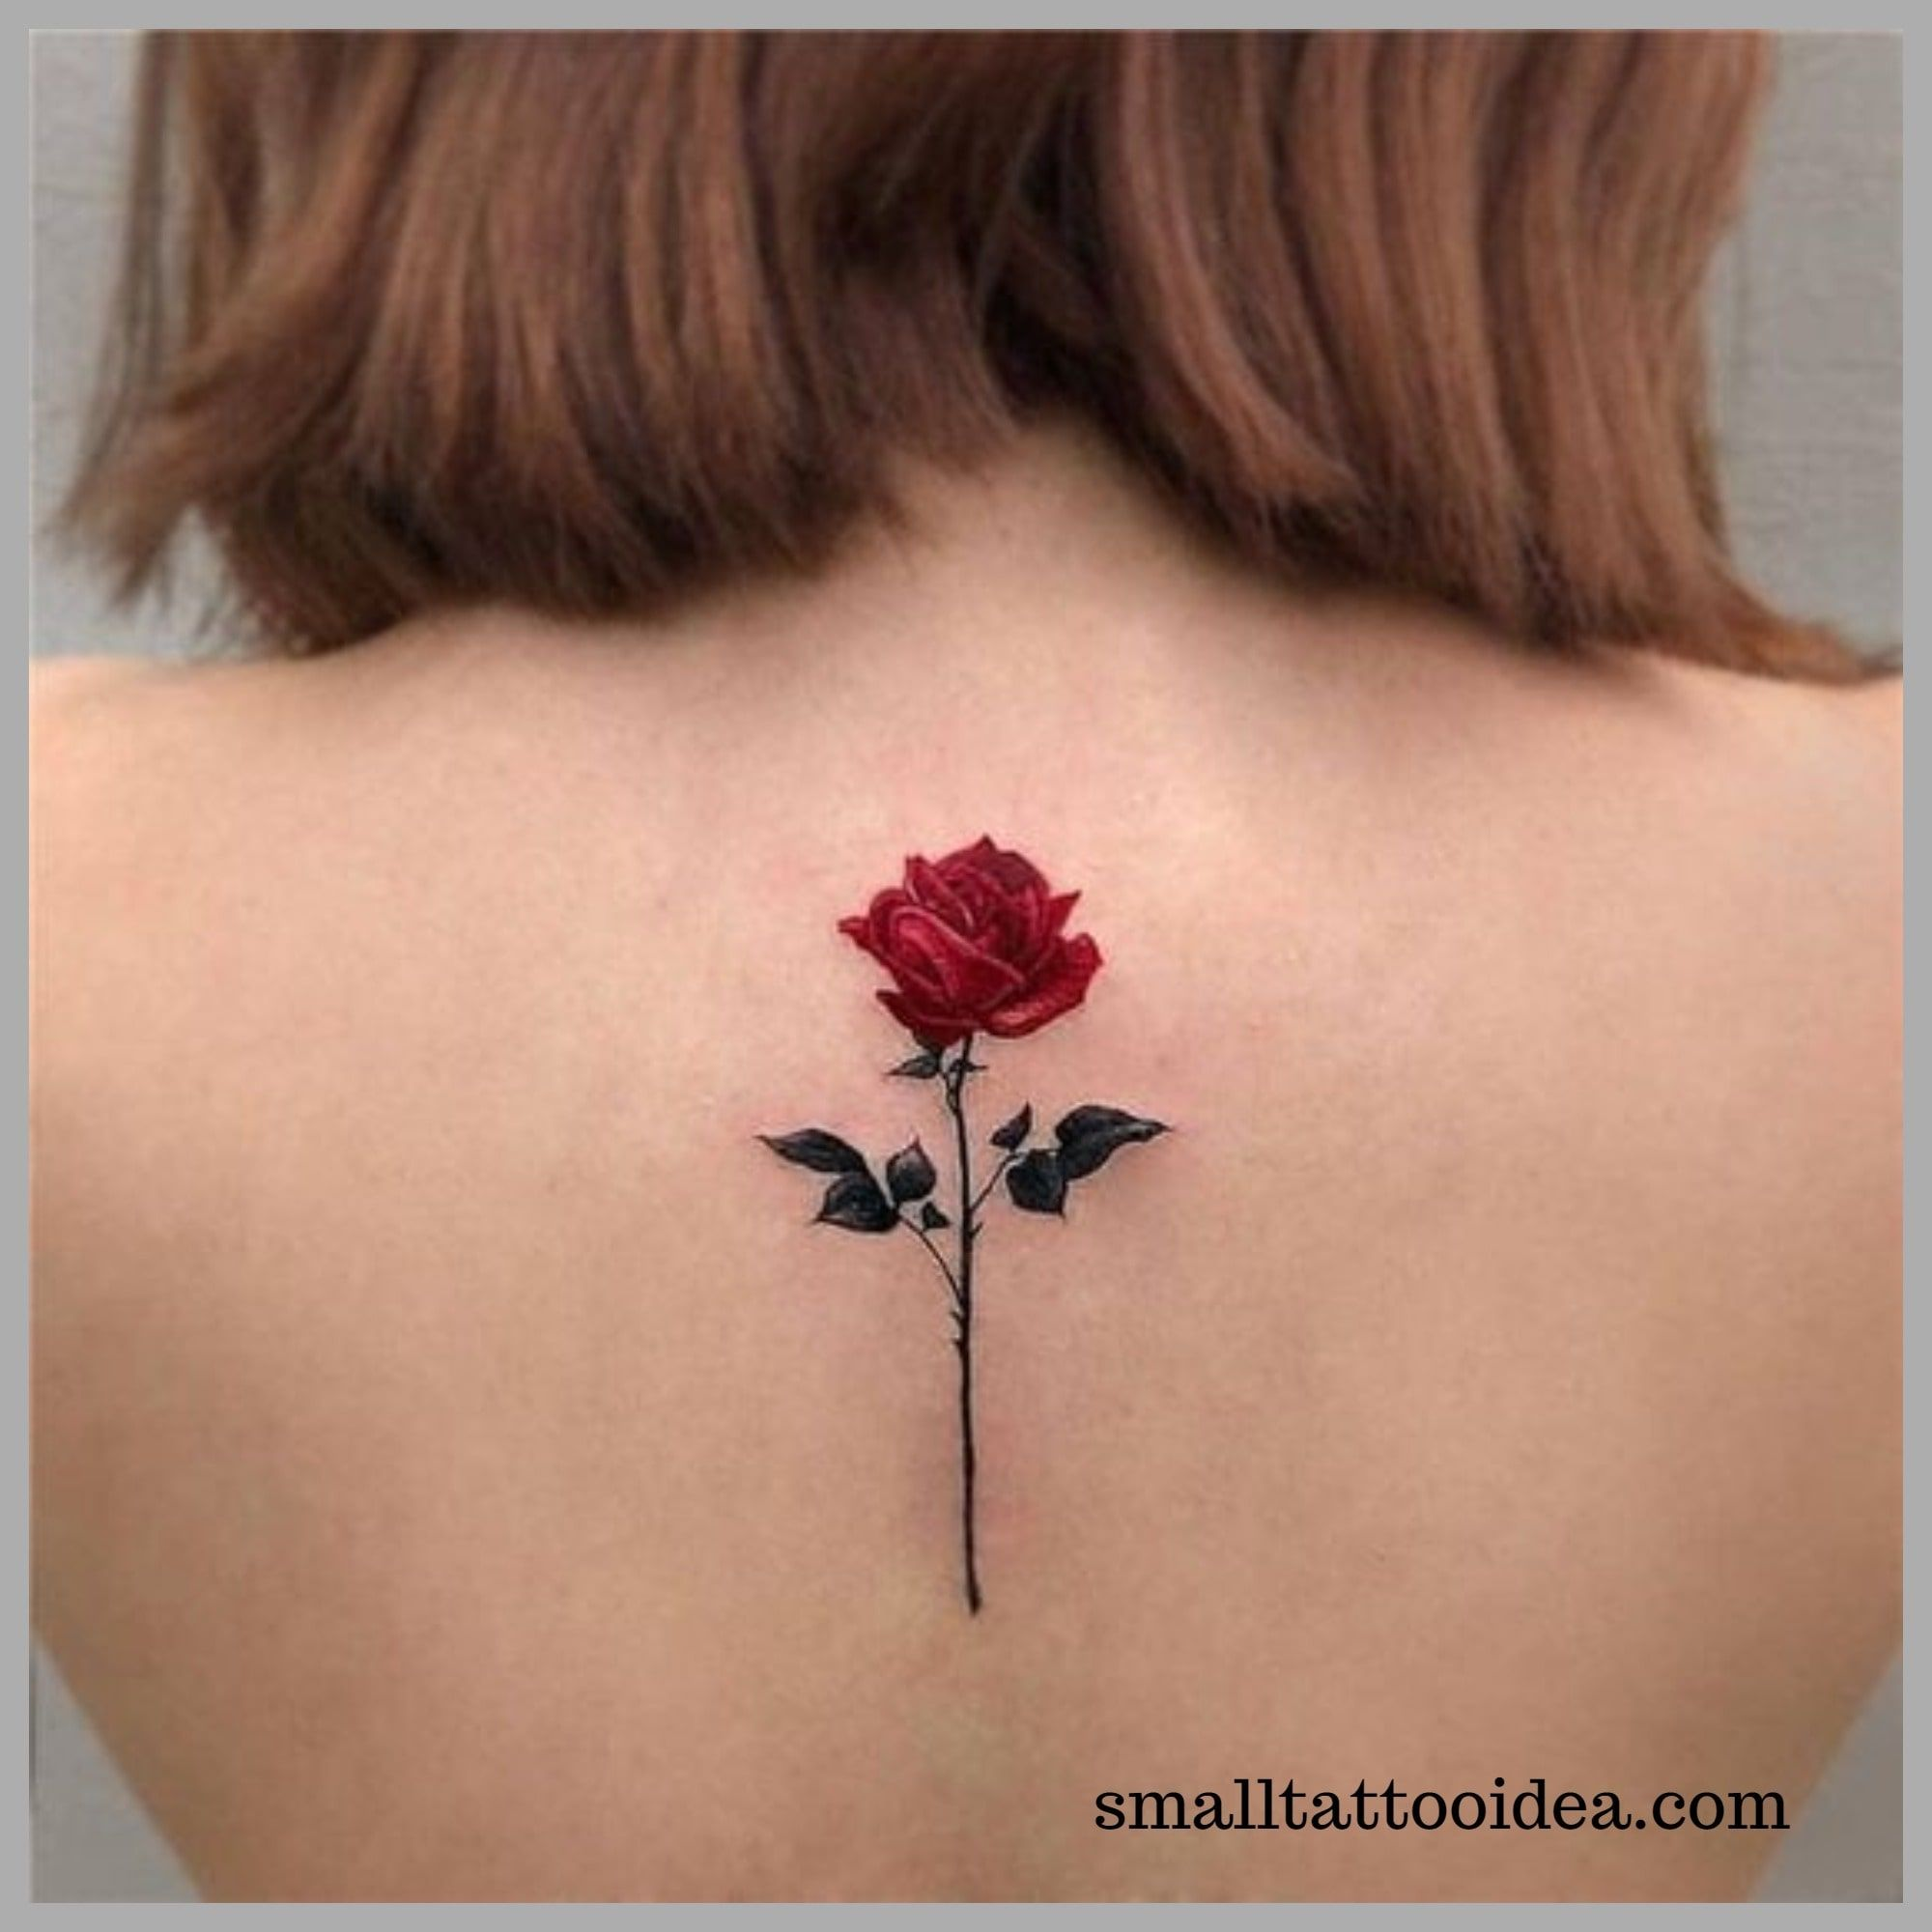 35 Small Red Rose Tattoo Ideas For Girls Tattoo Tattoos Popular Tattoos Small Tattoos Simple